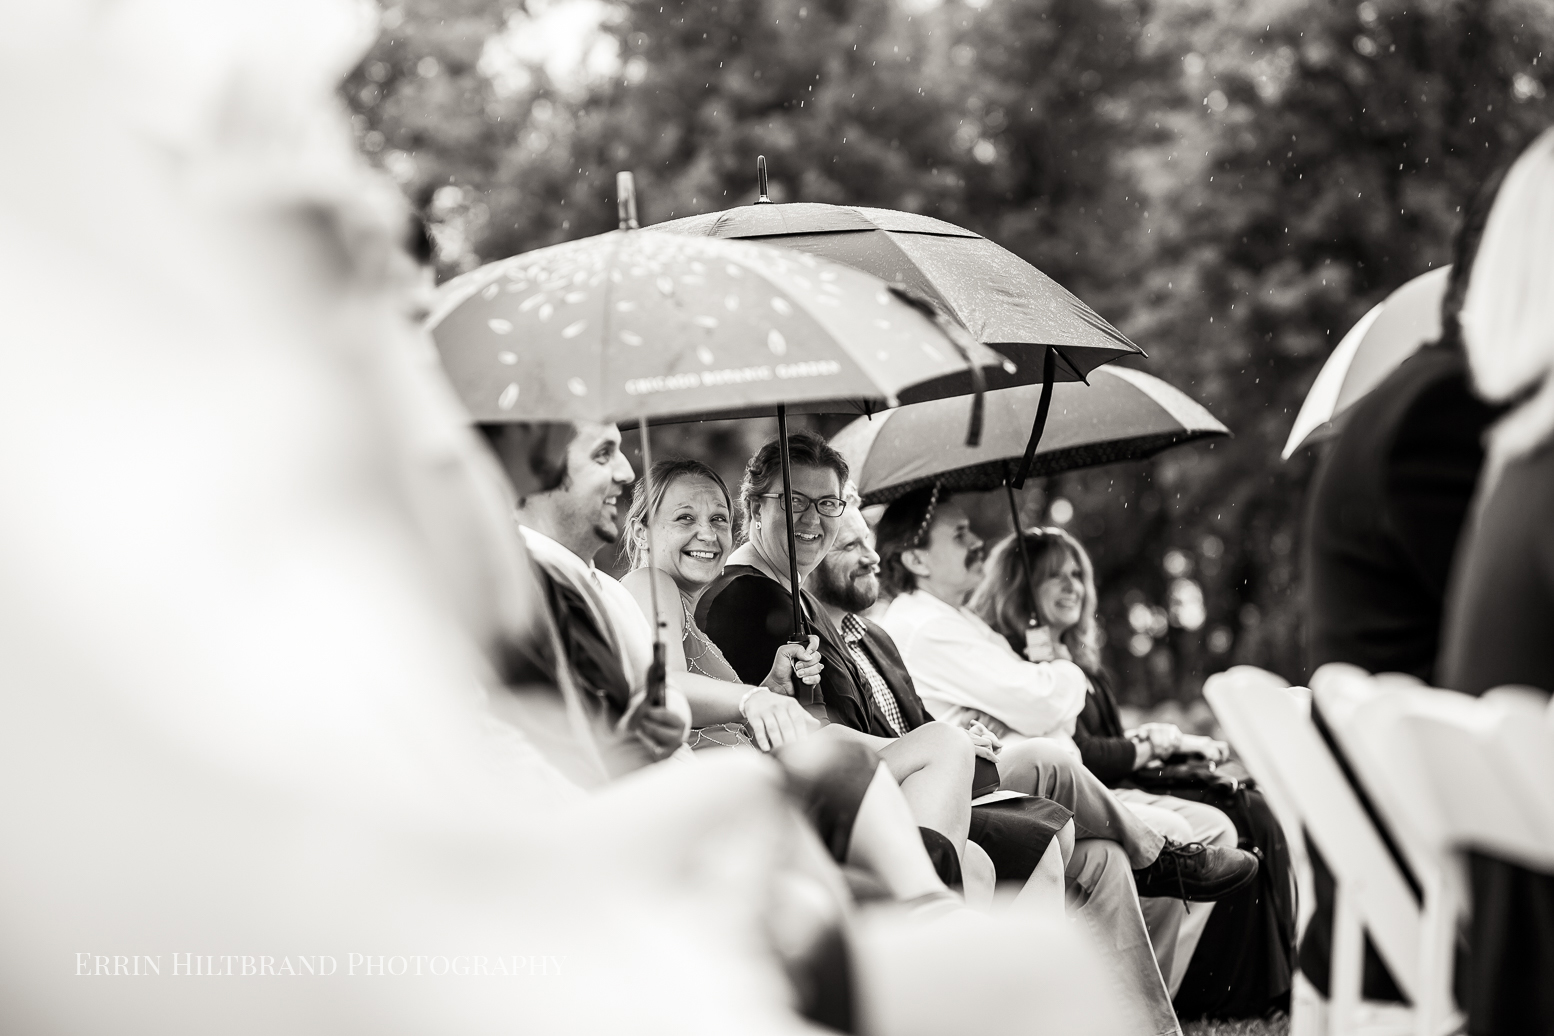 Wedding guests seated during the ceremony, holding umbrellas